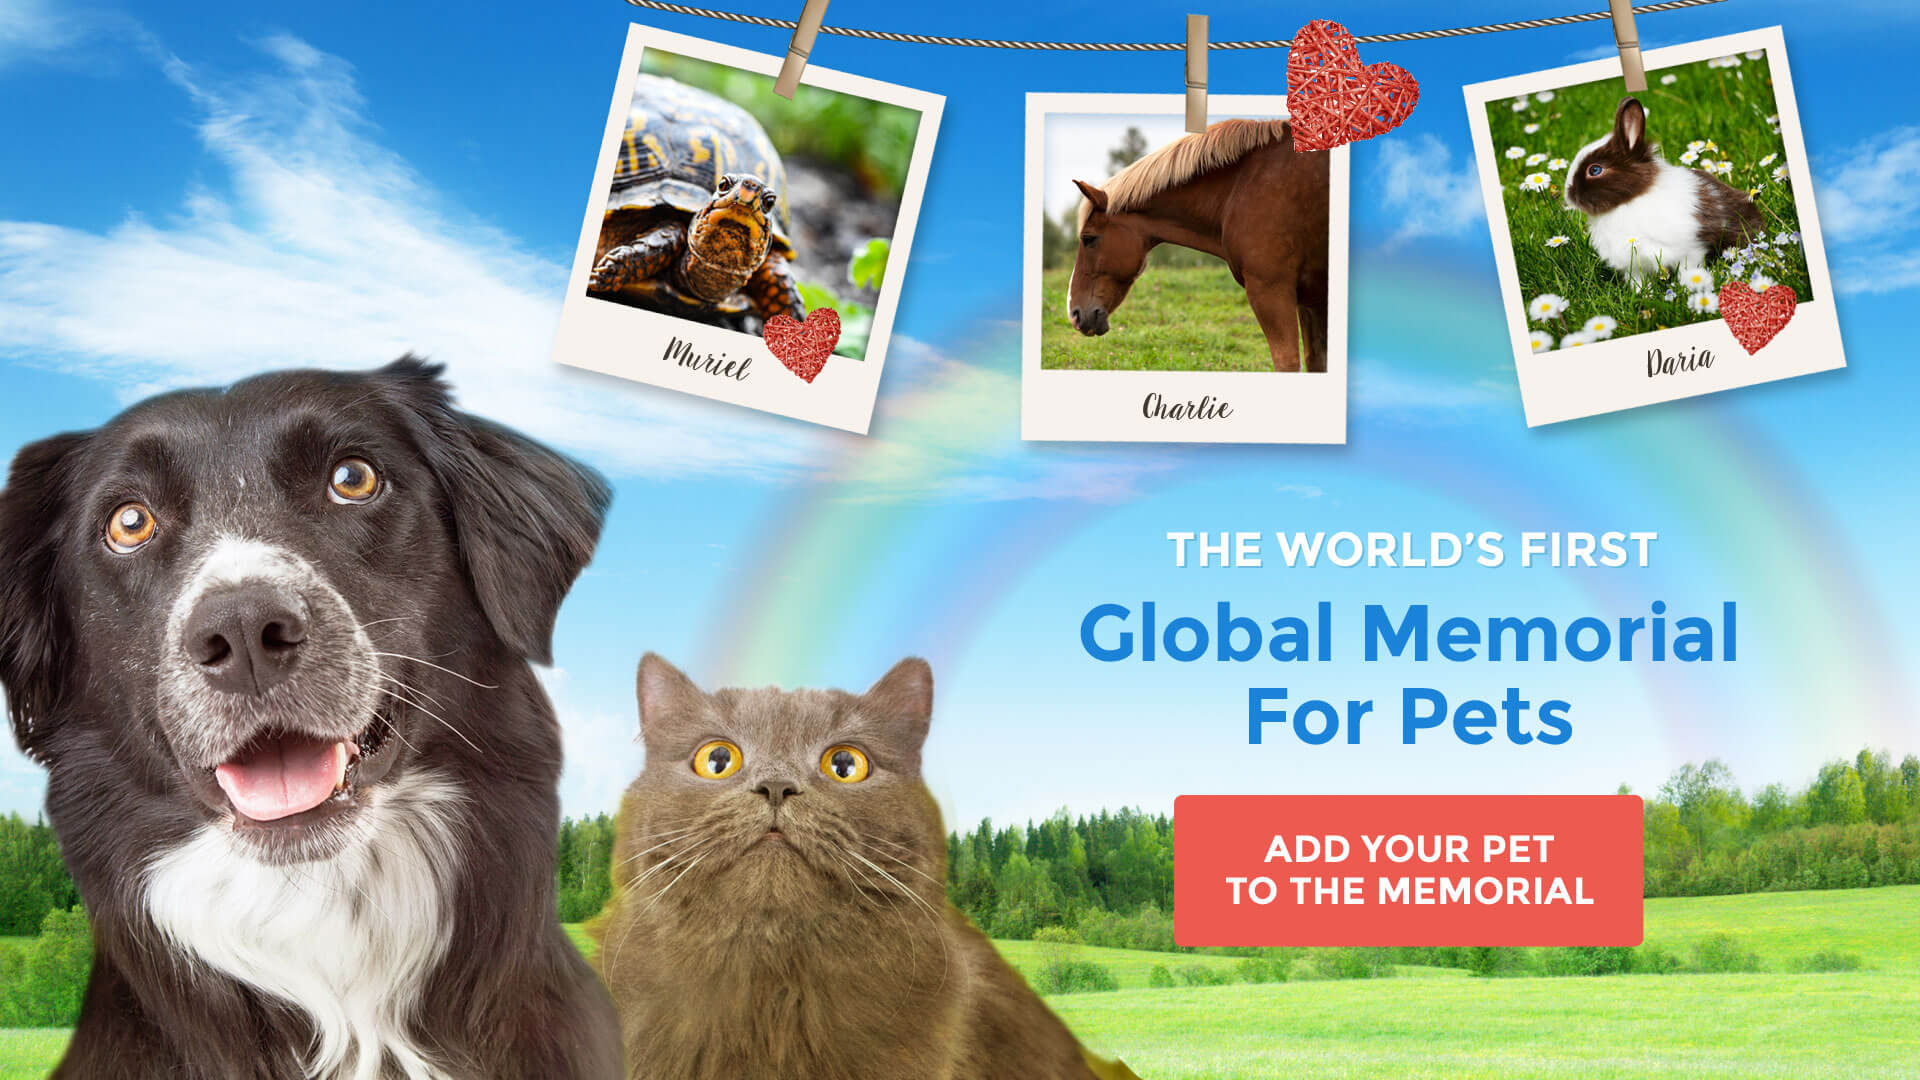 The world's first Global Memorial For Pets - add your pet to the memorial!